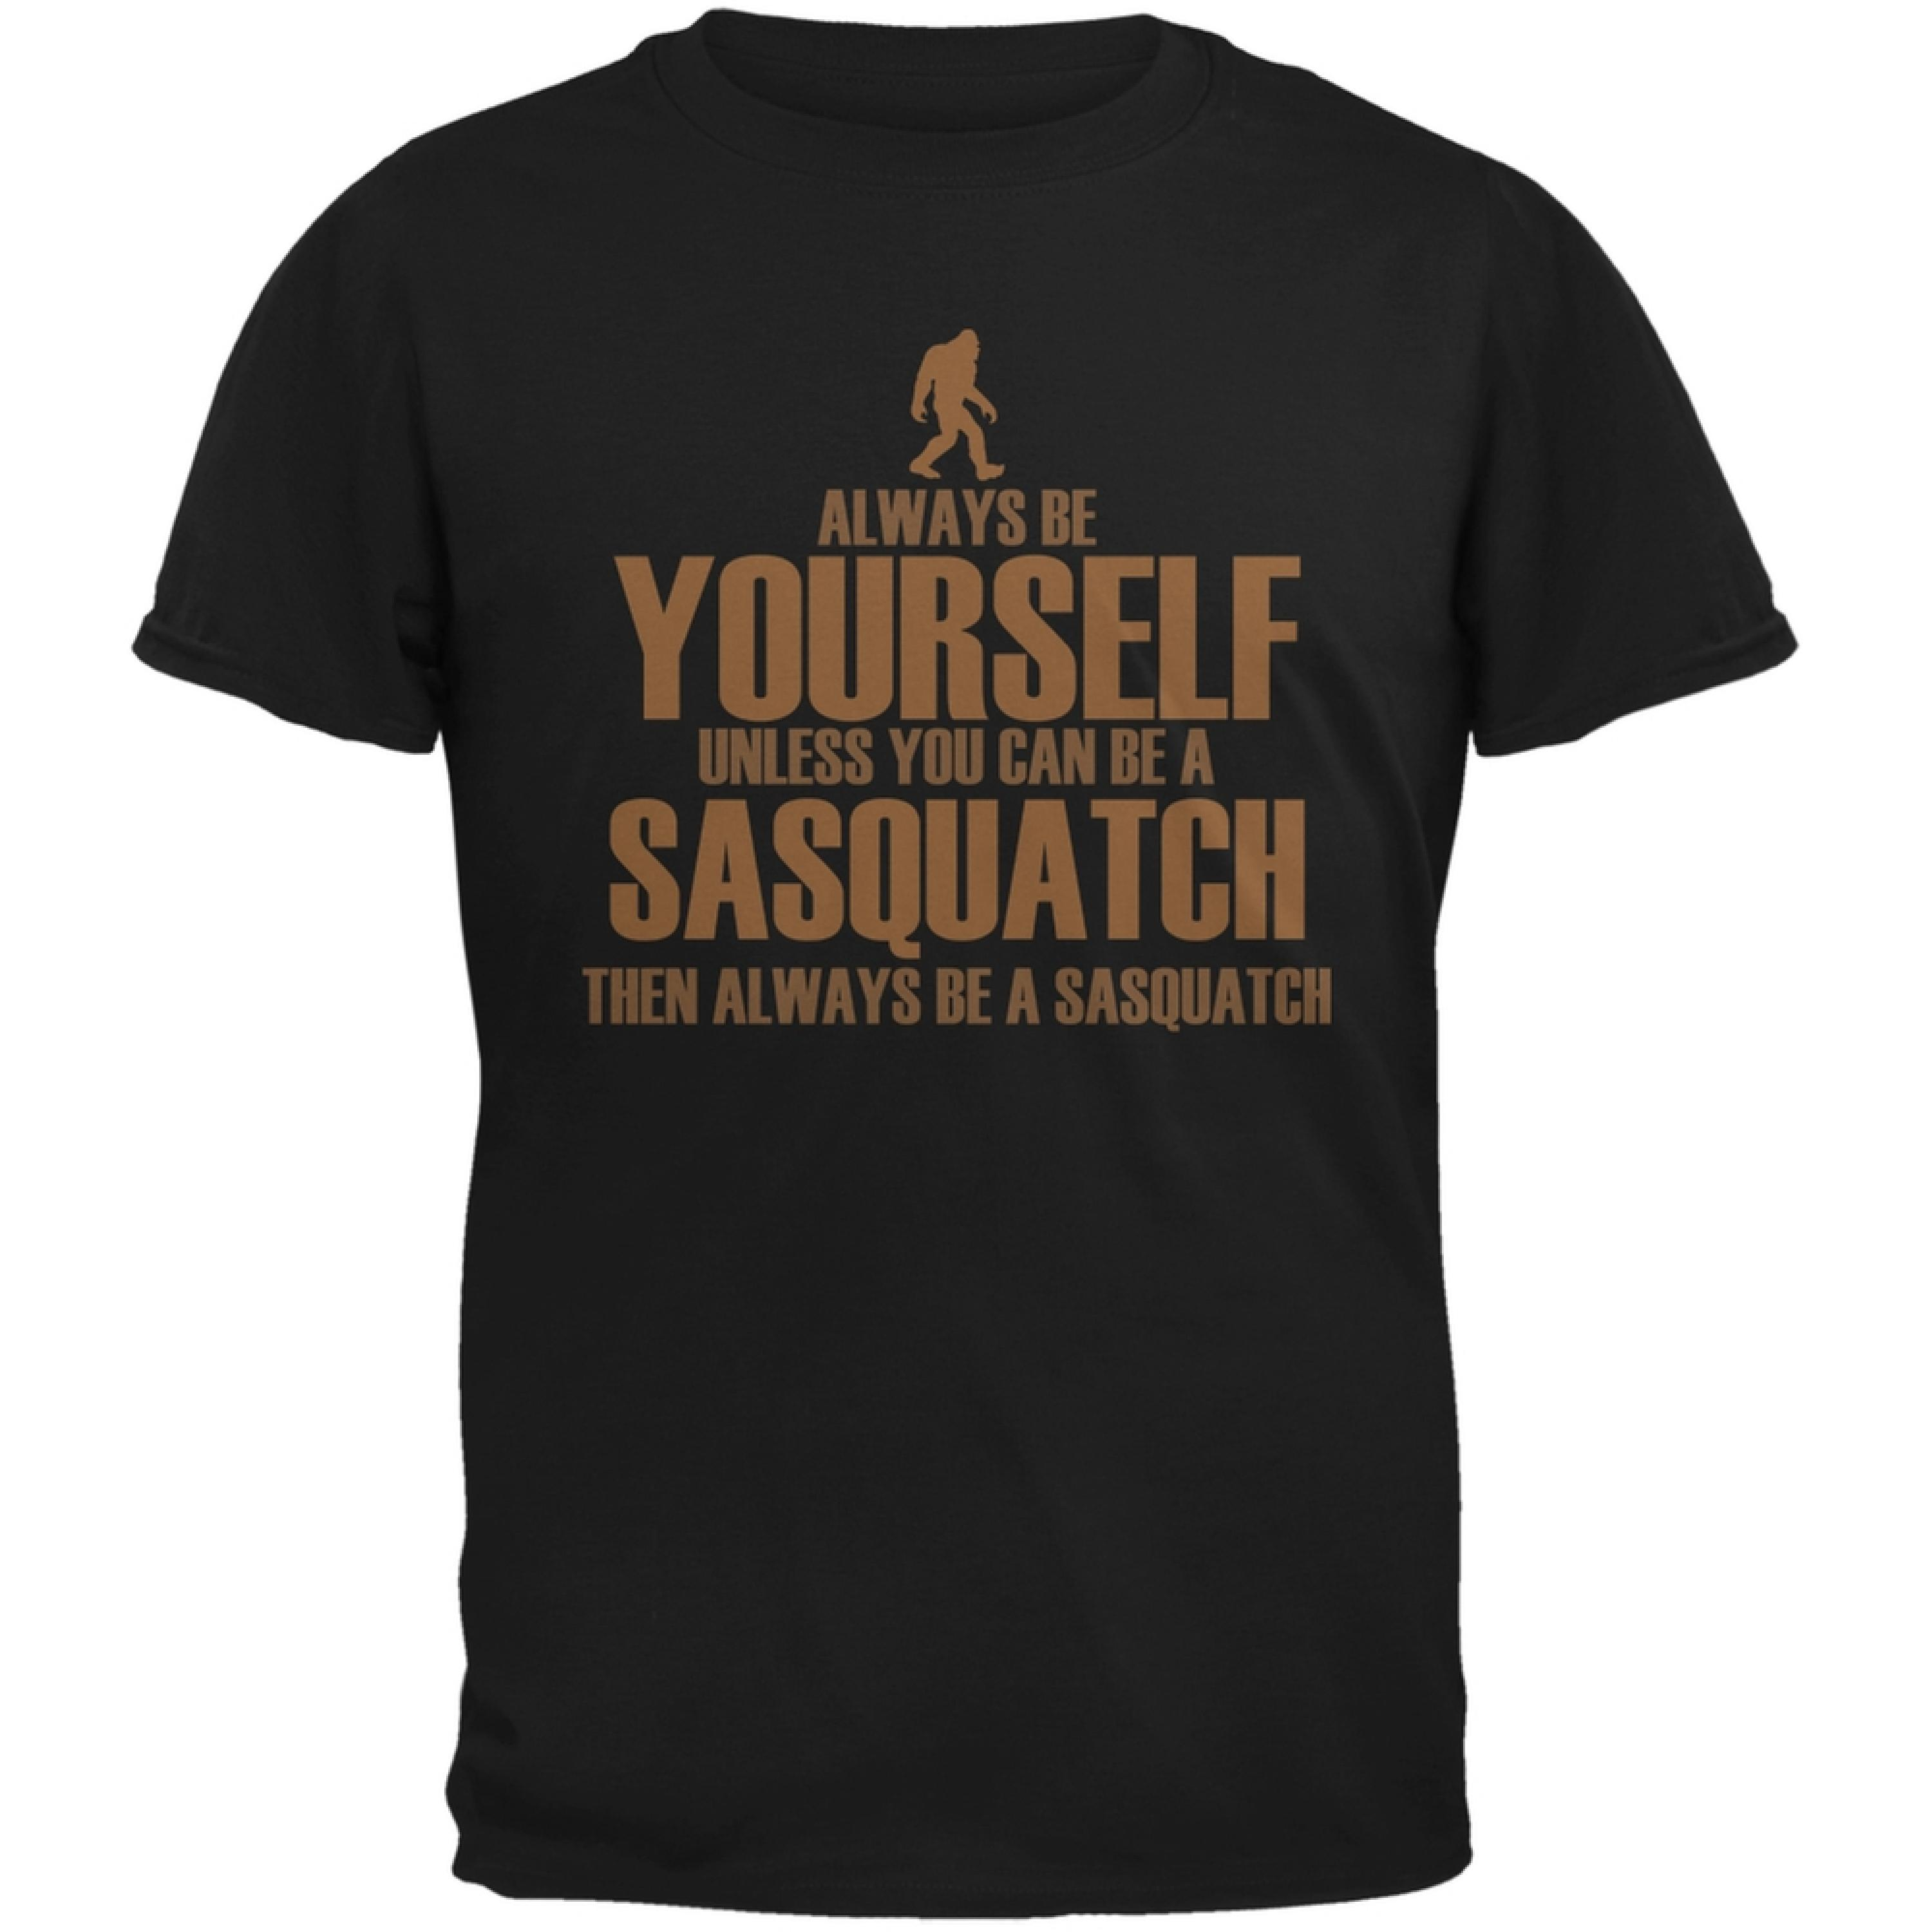 Always Be Yourself Sasquatch Black Adult T-Shirt